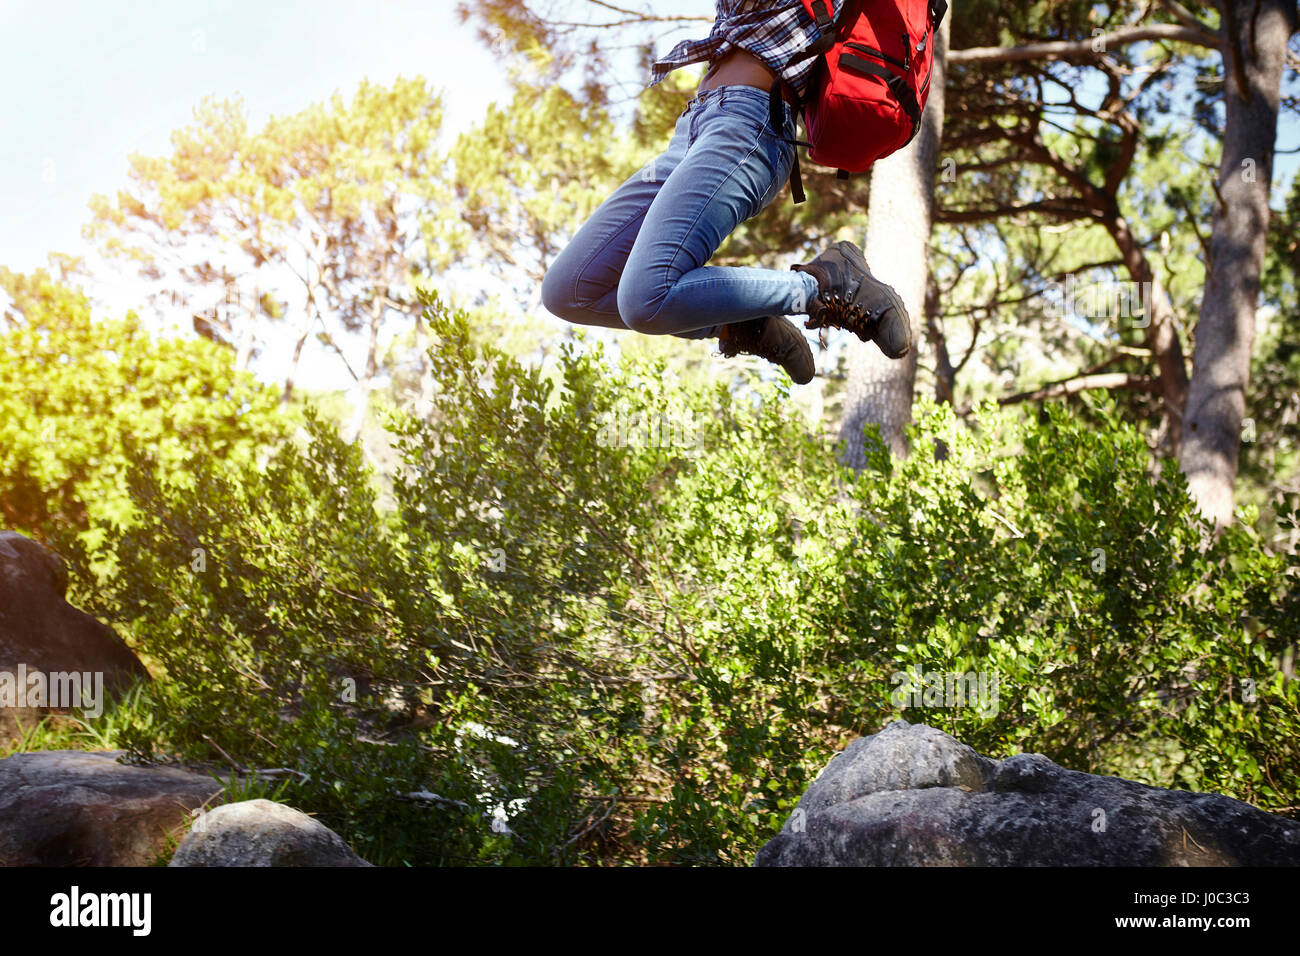 Young woman, wearing backpack, jumping in air, low section - Stock Image